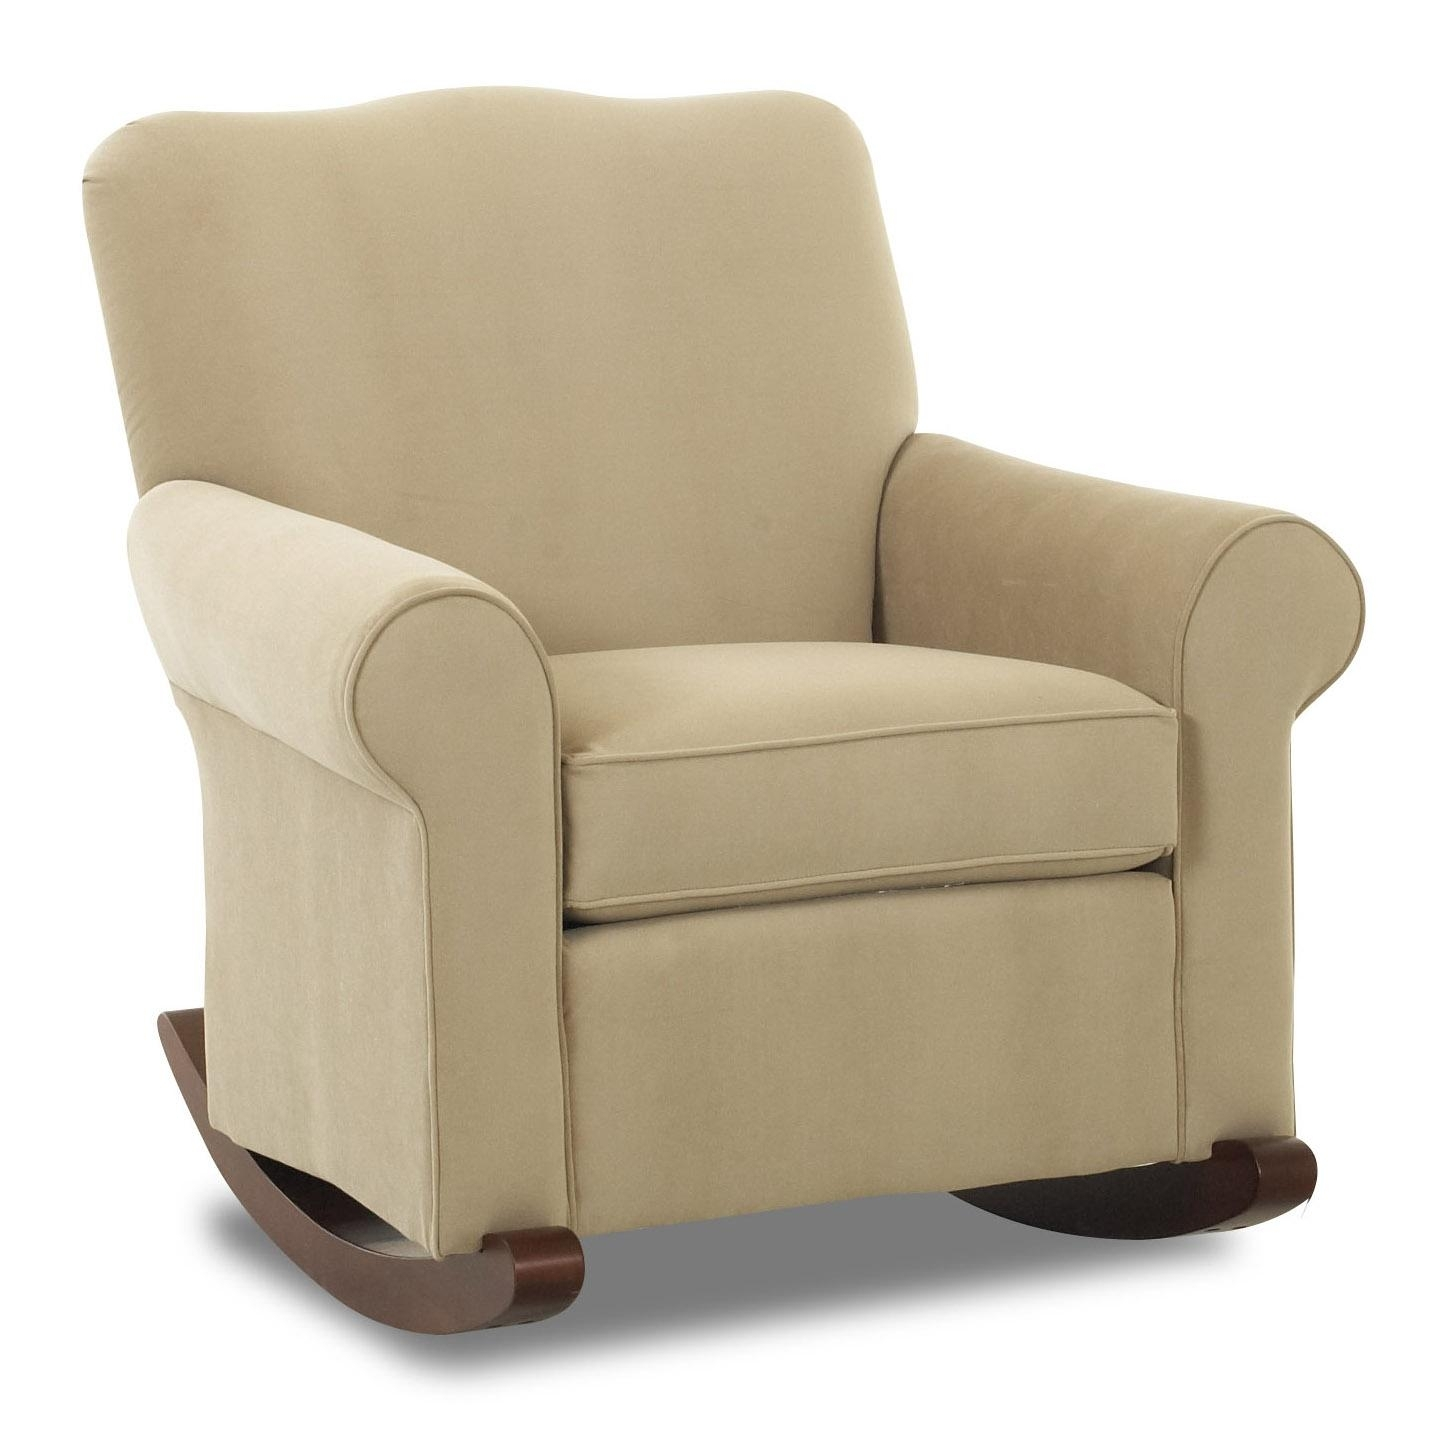 Klaussner Chairs And Accents Old Town Upholstered Rocker | Value Throughout Upholstered Rocking Chairs (View 2 of 15)